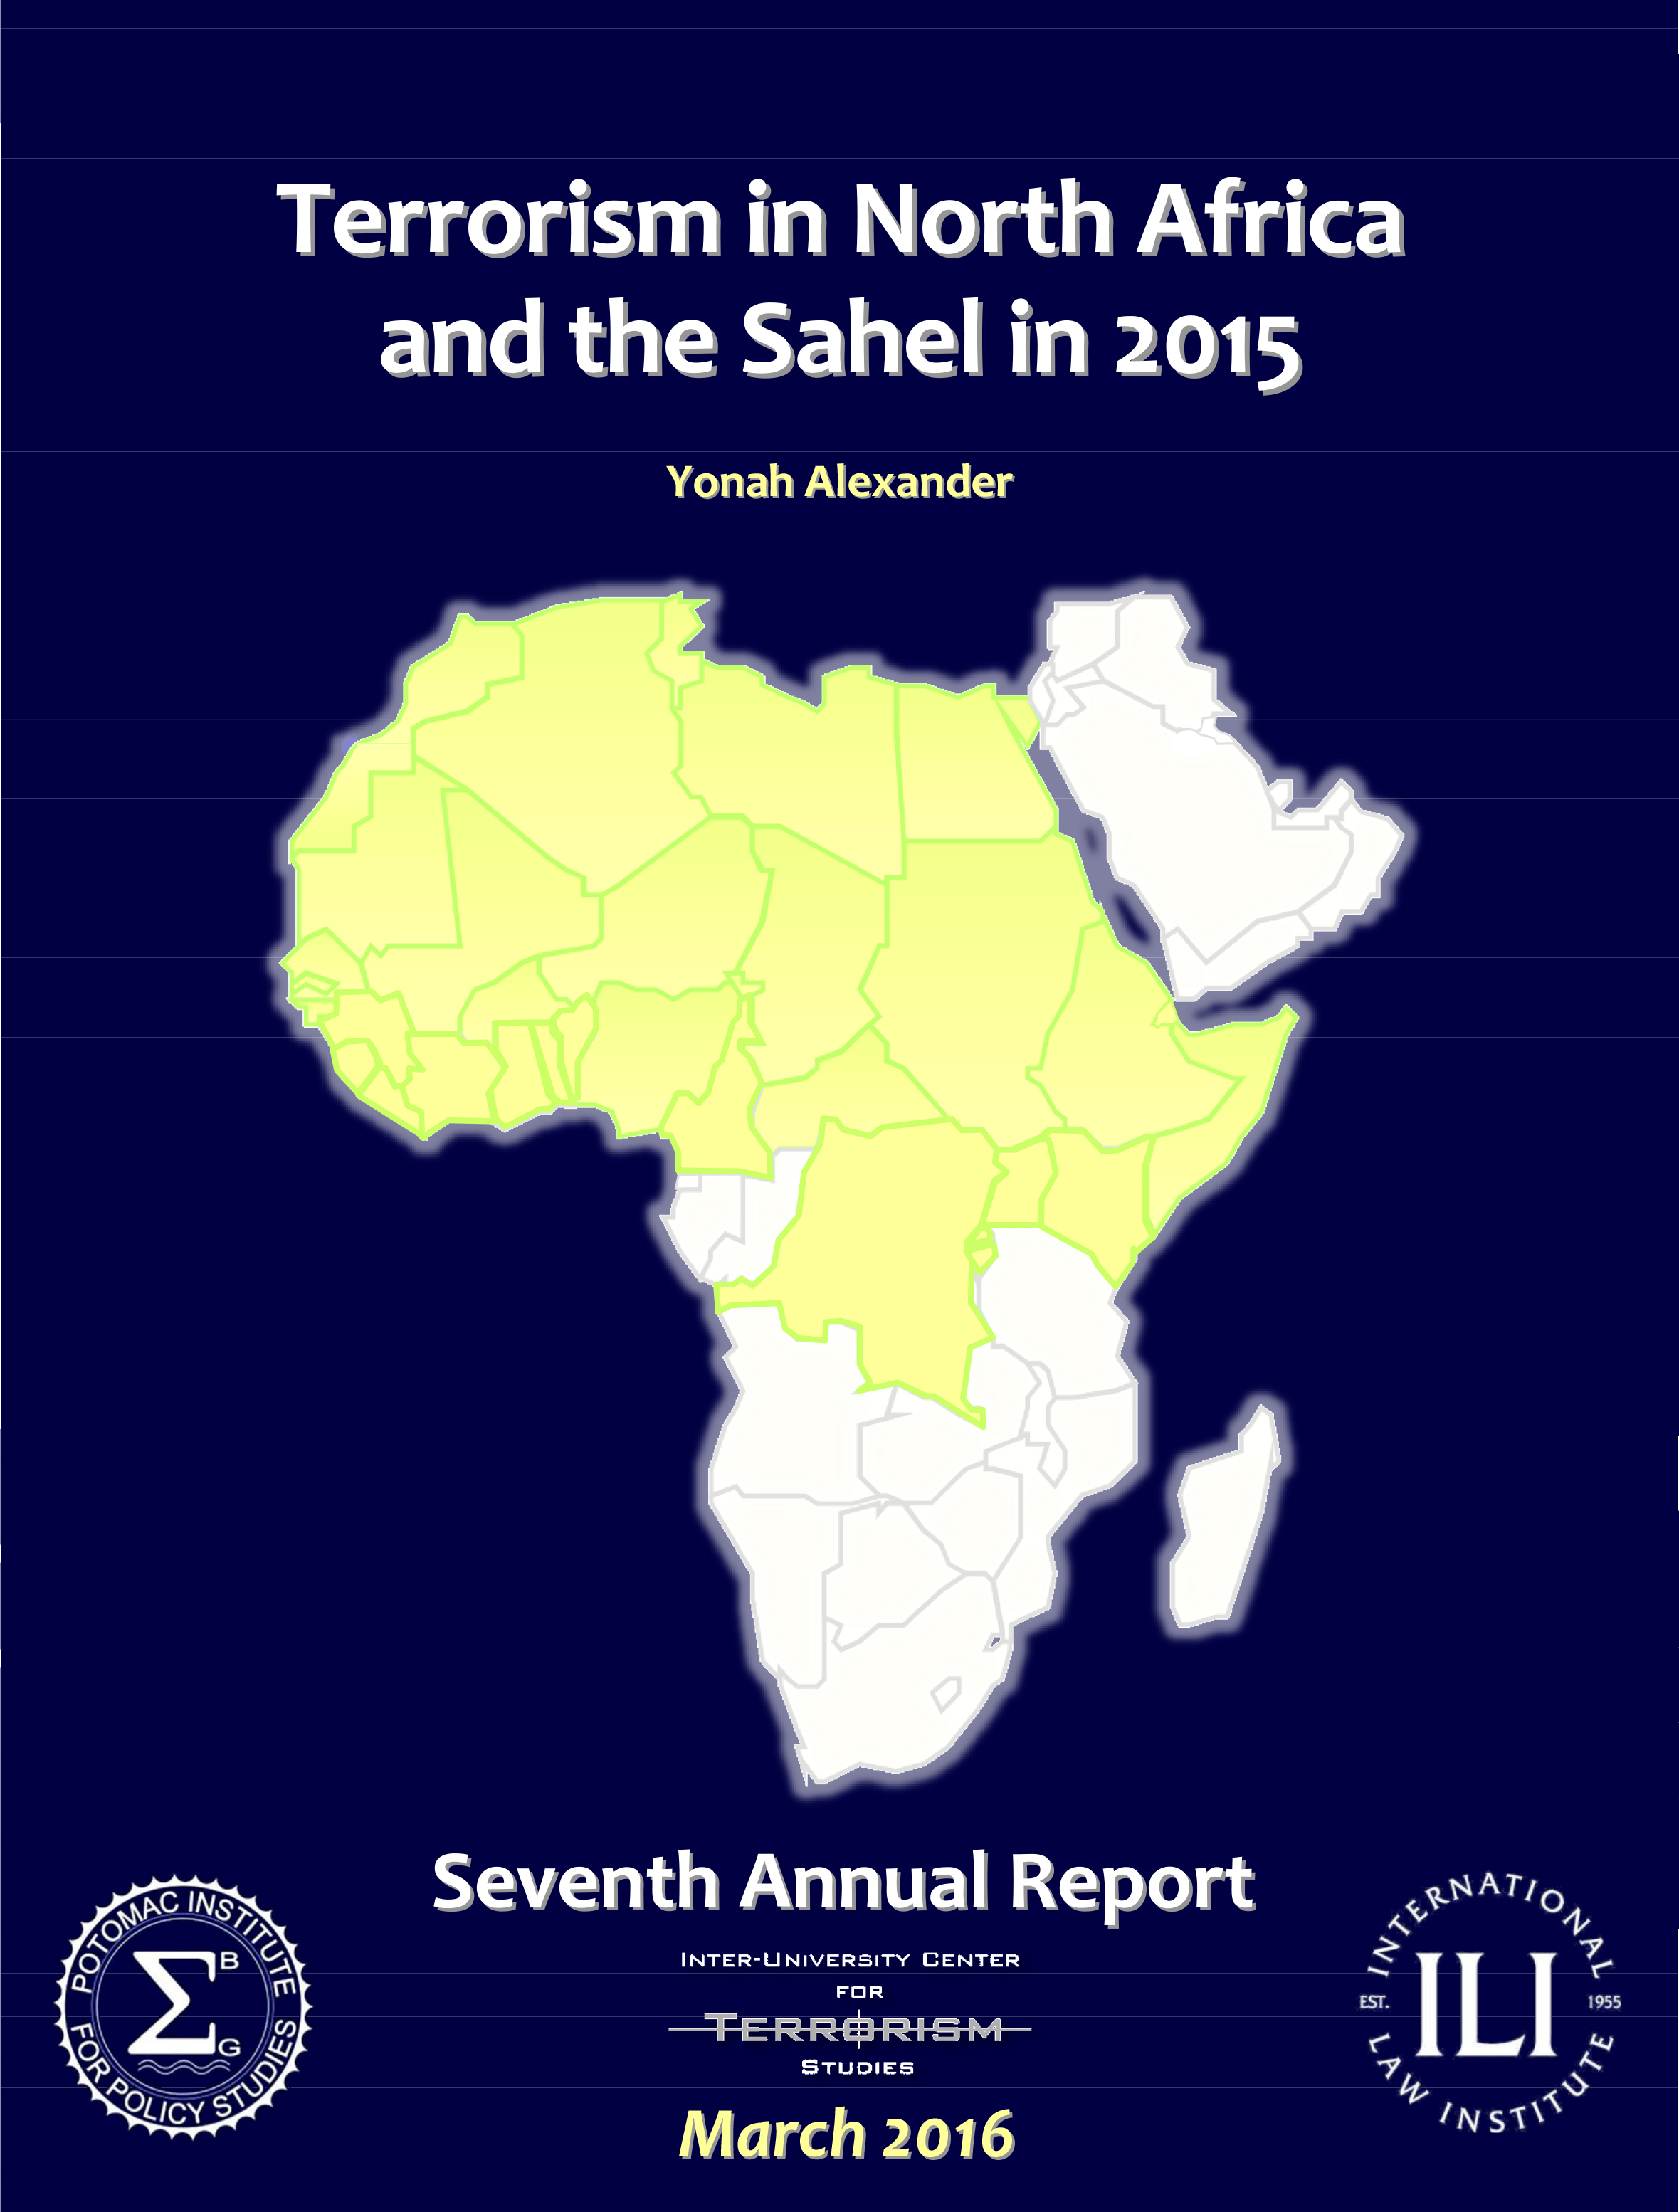 Terrorism in North Africa and the Sahel in 2015